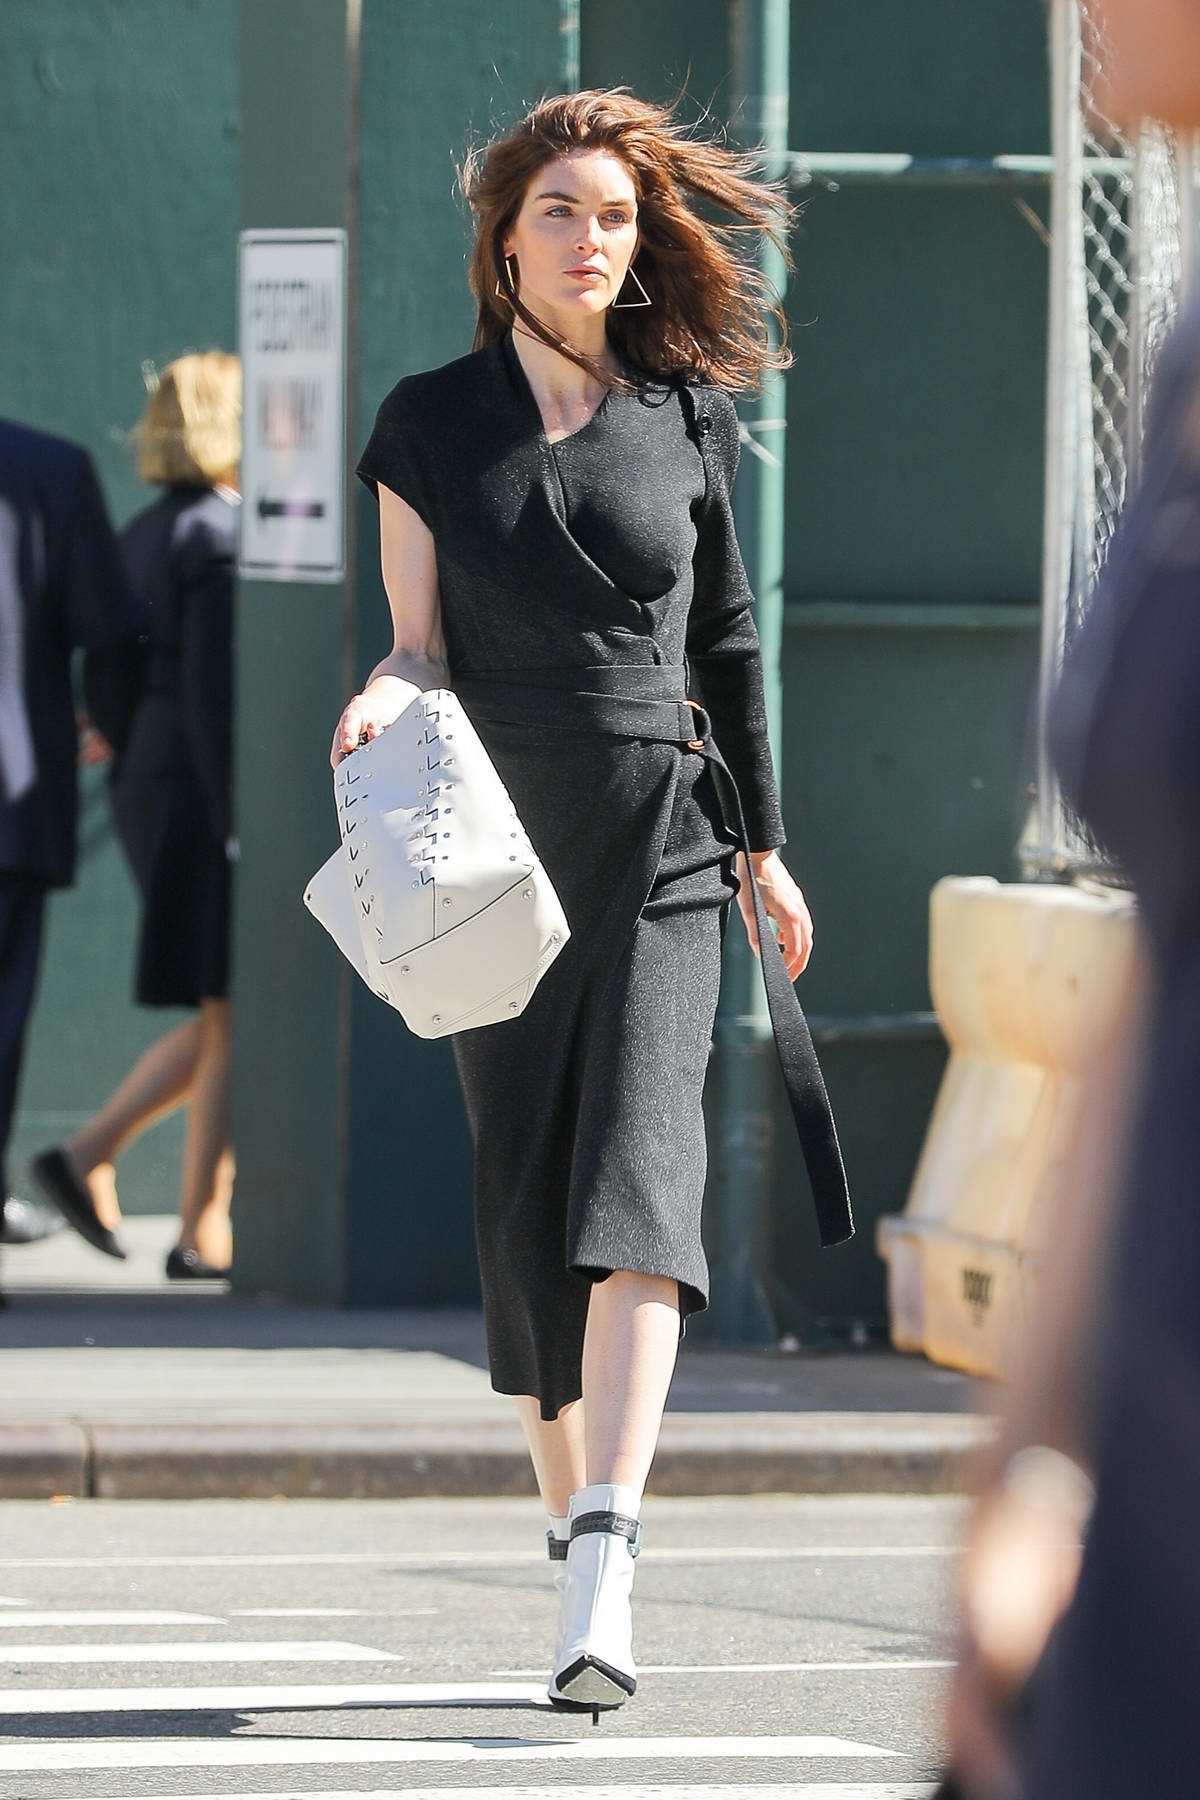 Hilary Rhoda wearing a stylish black dress during a photoshoot in New York City